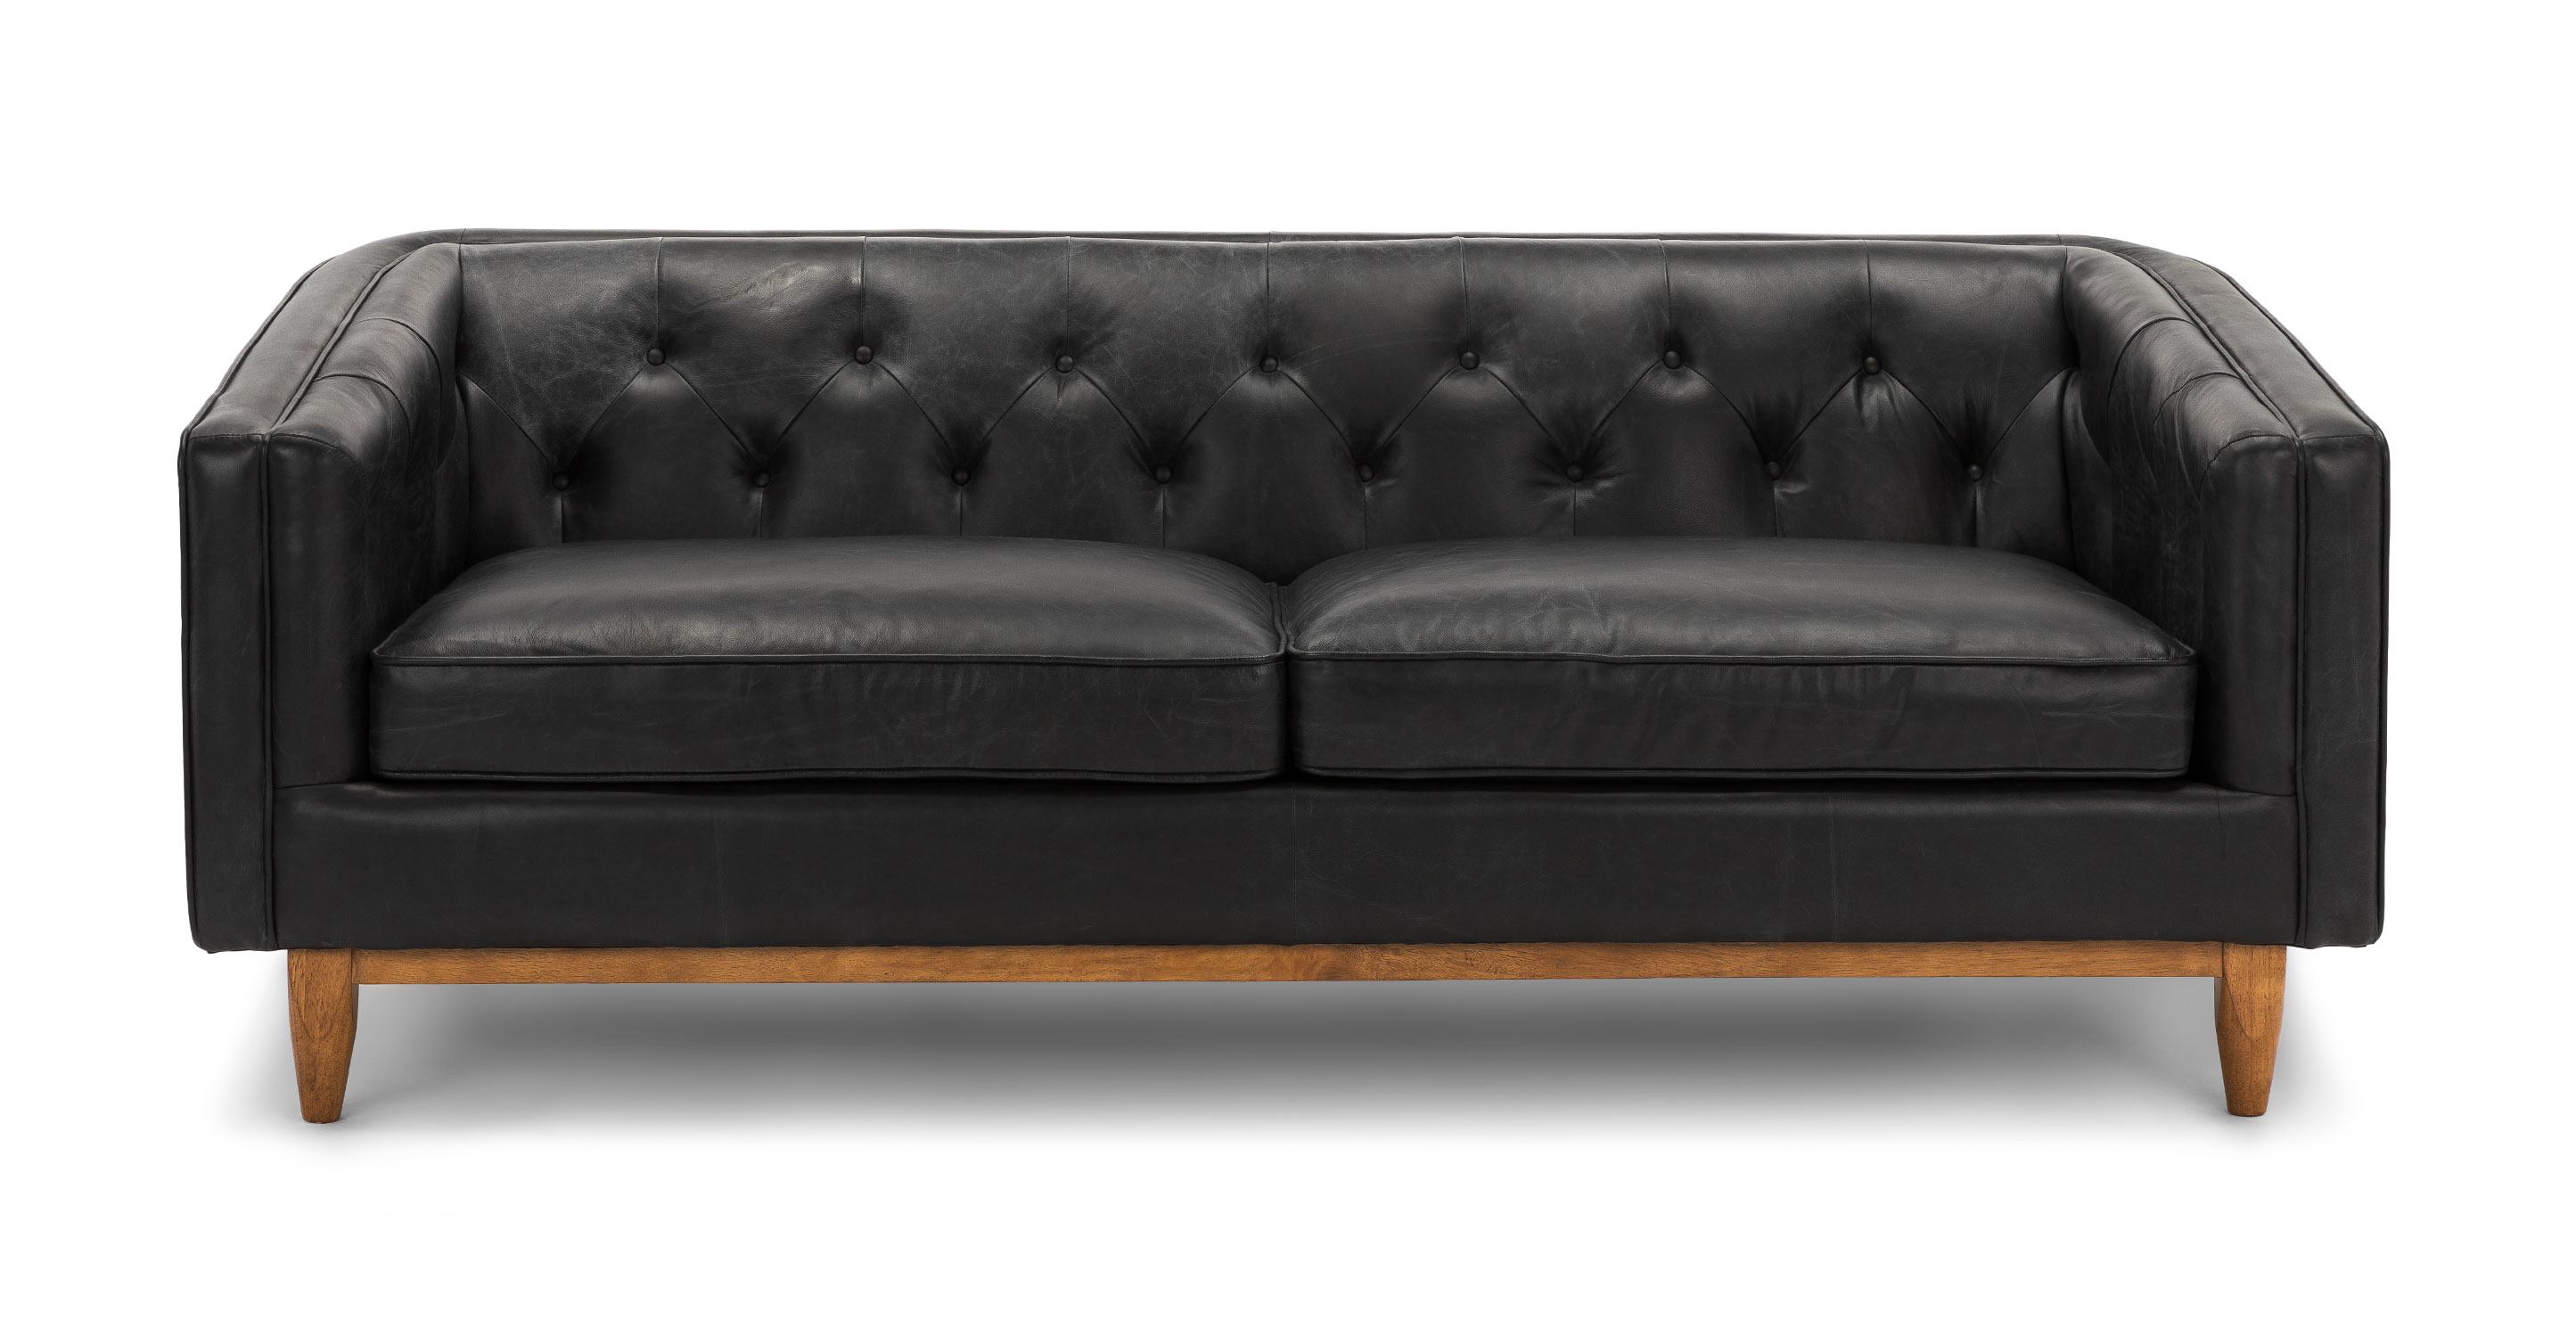 - Oxford Black Alcott 3 Seater Leather Sofa Article